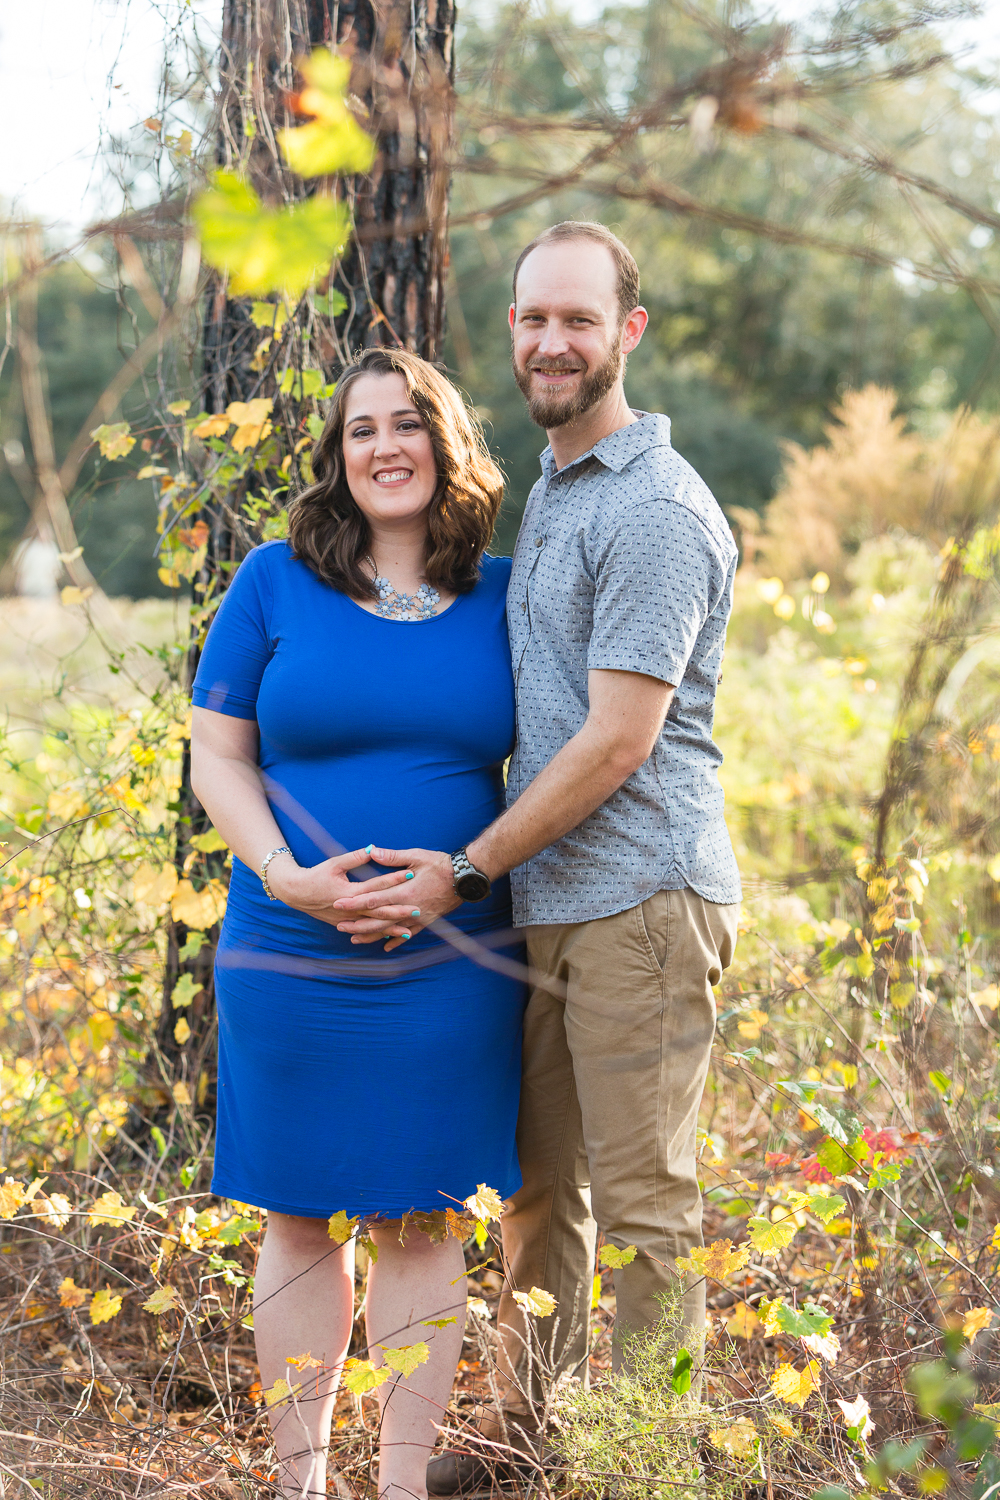 Orlando maternity photographer